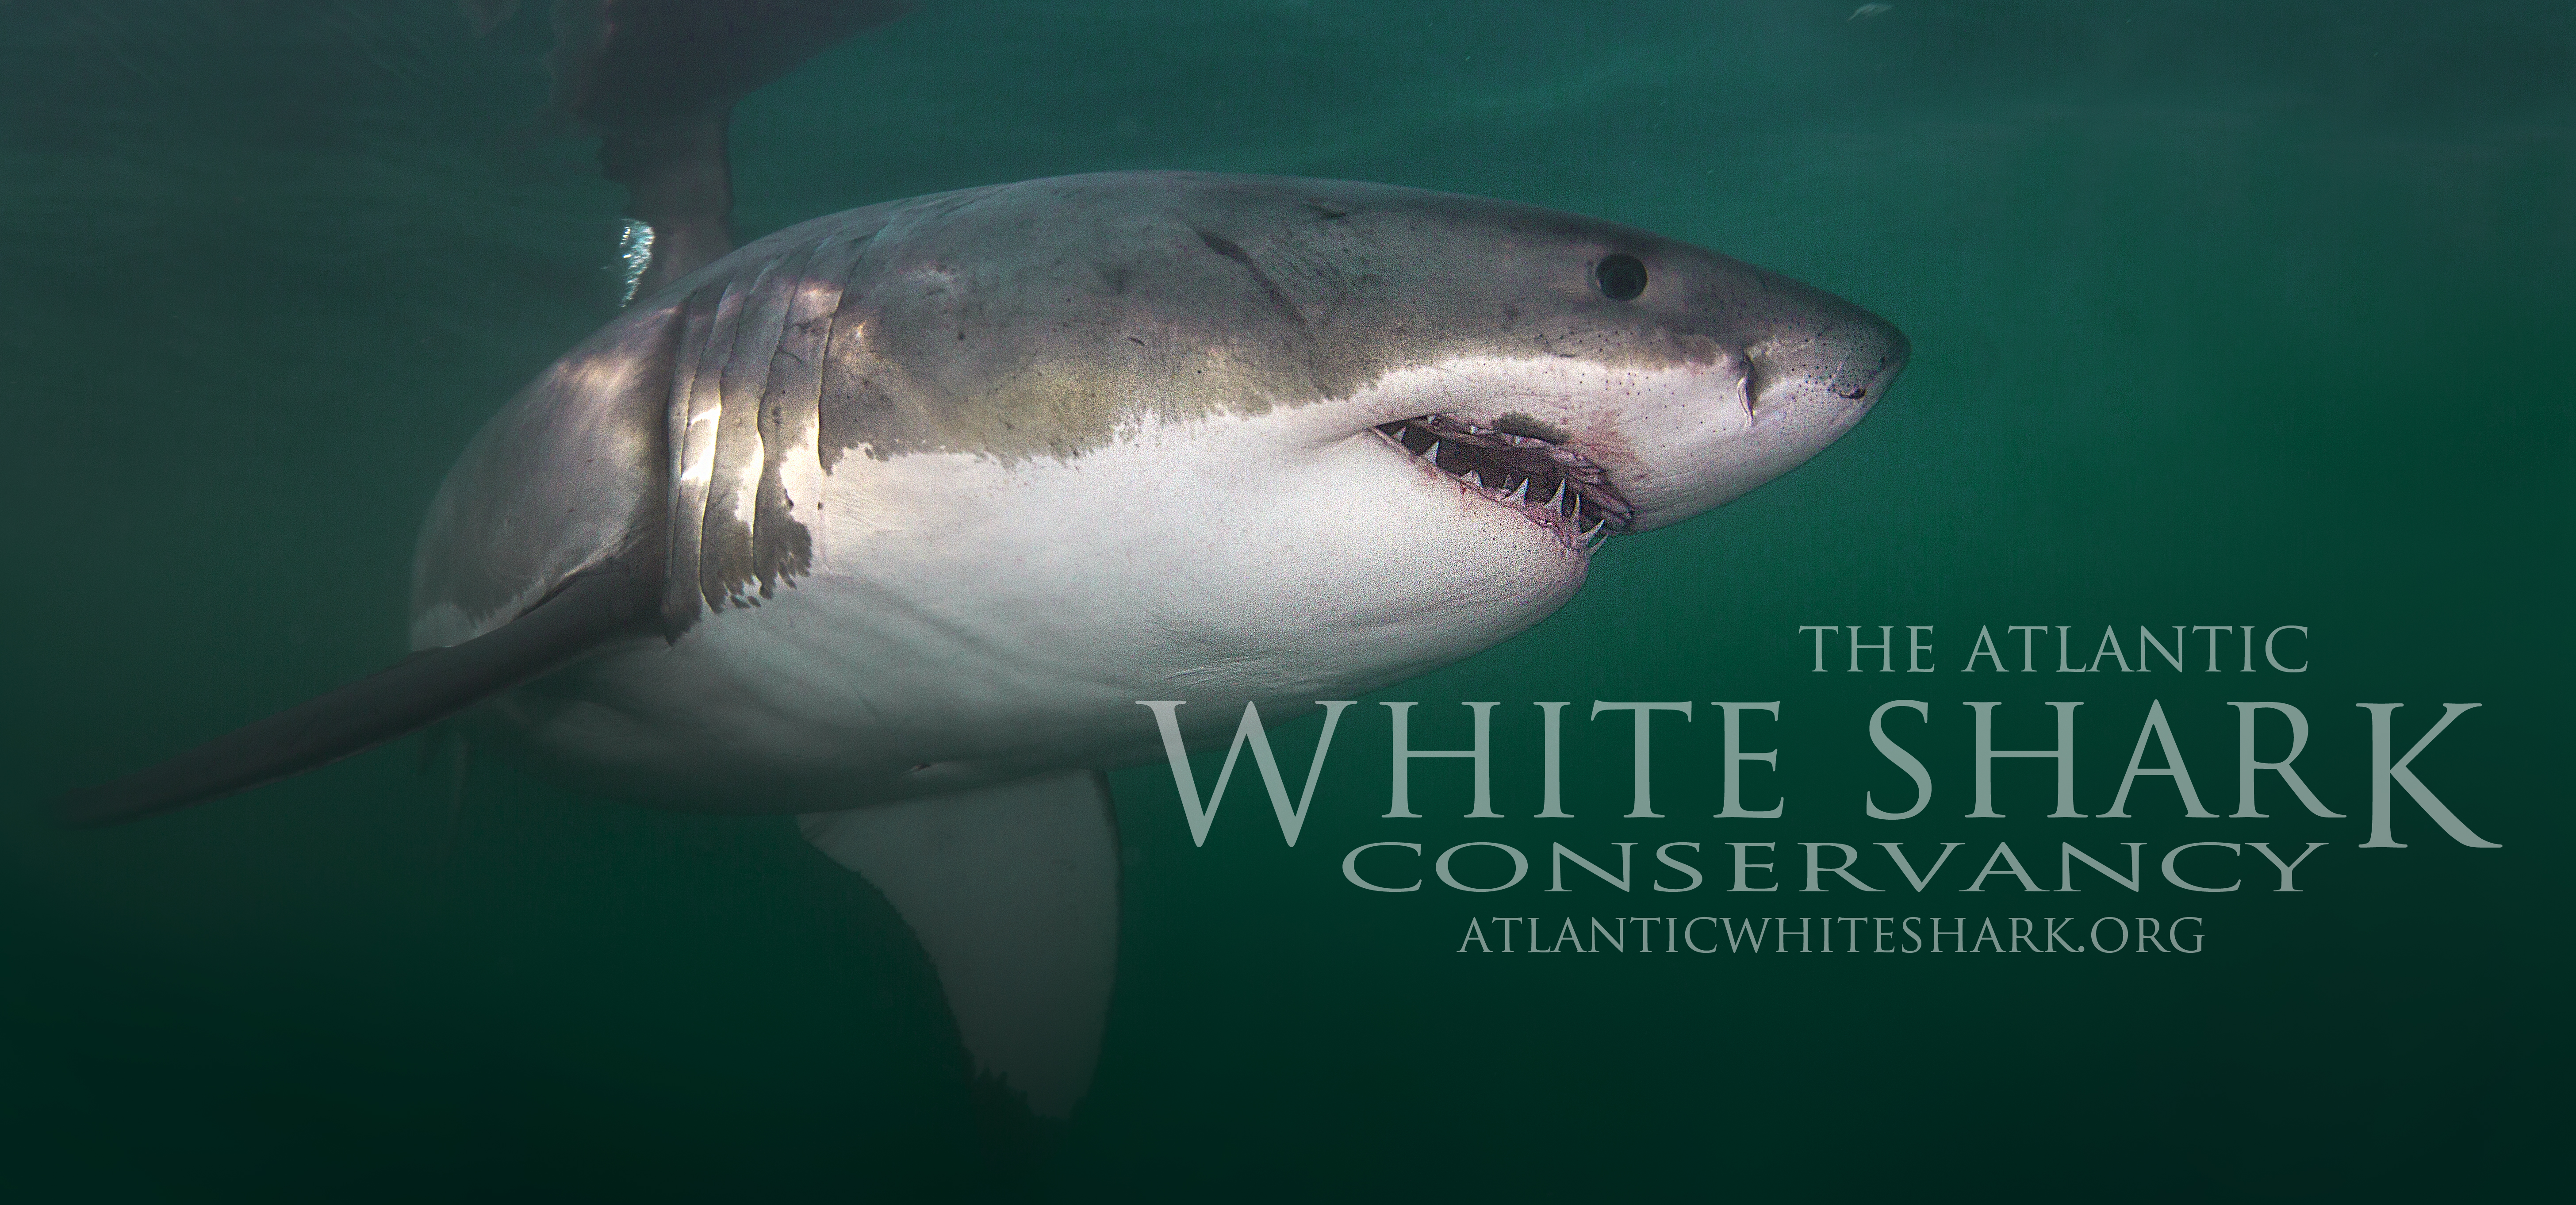 atlantic white shark conservancy banner